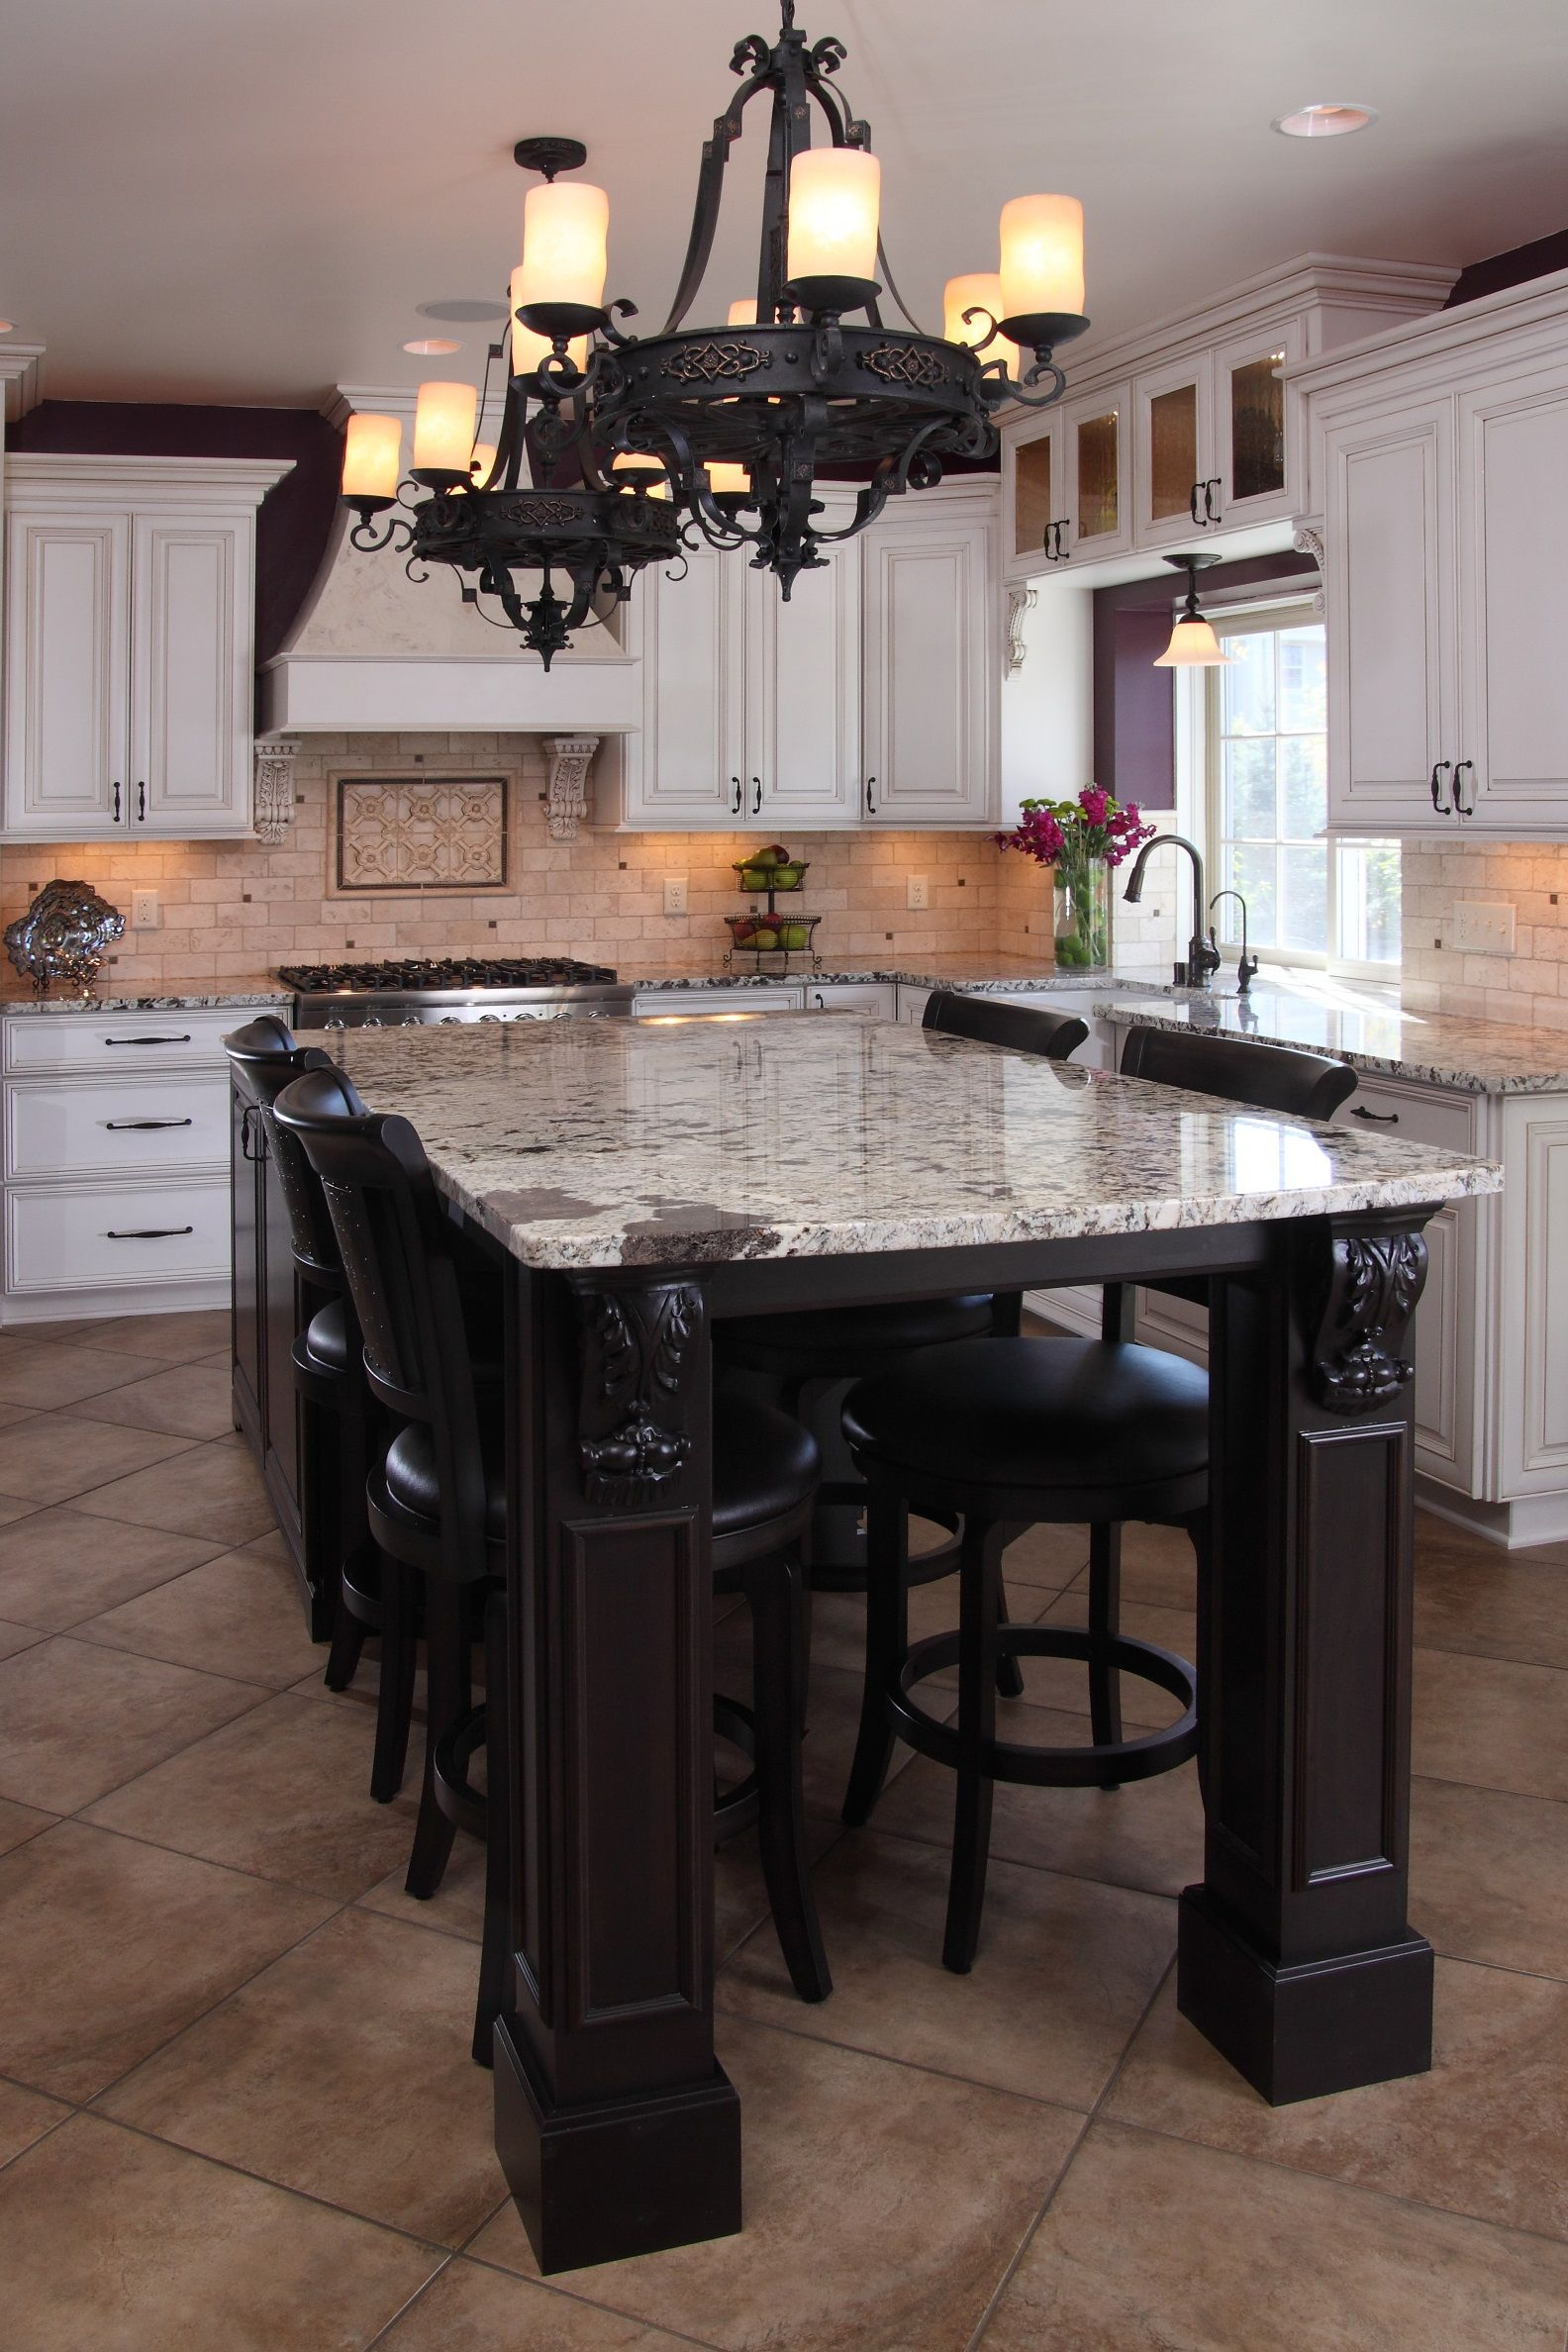 15fe064119ca7b4fcdb268187617db2f Painted Kitchen Cabinets Remodeling Home on diy projects kitchen cabinets, home design kitchen cabinets, new construction kitchen cabinets, interior painting kitchen cabinets,